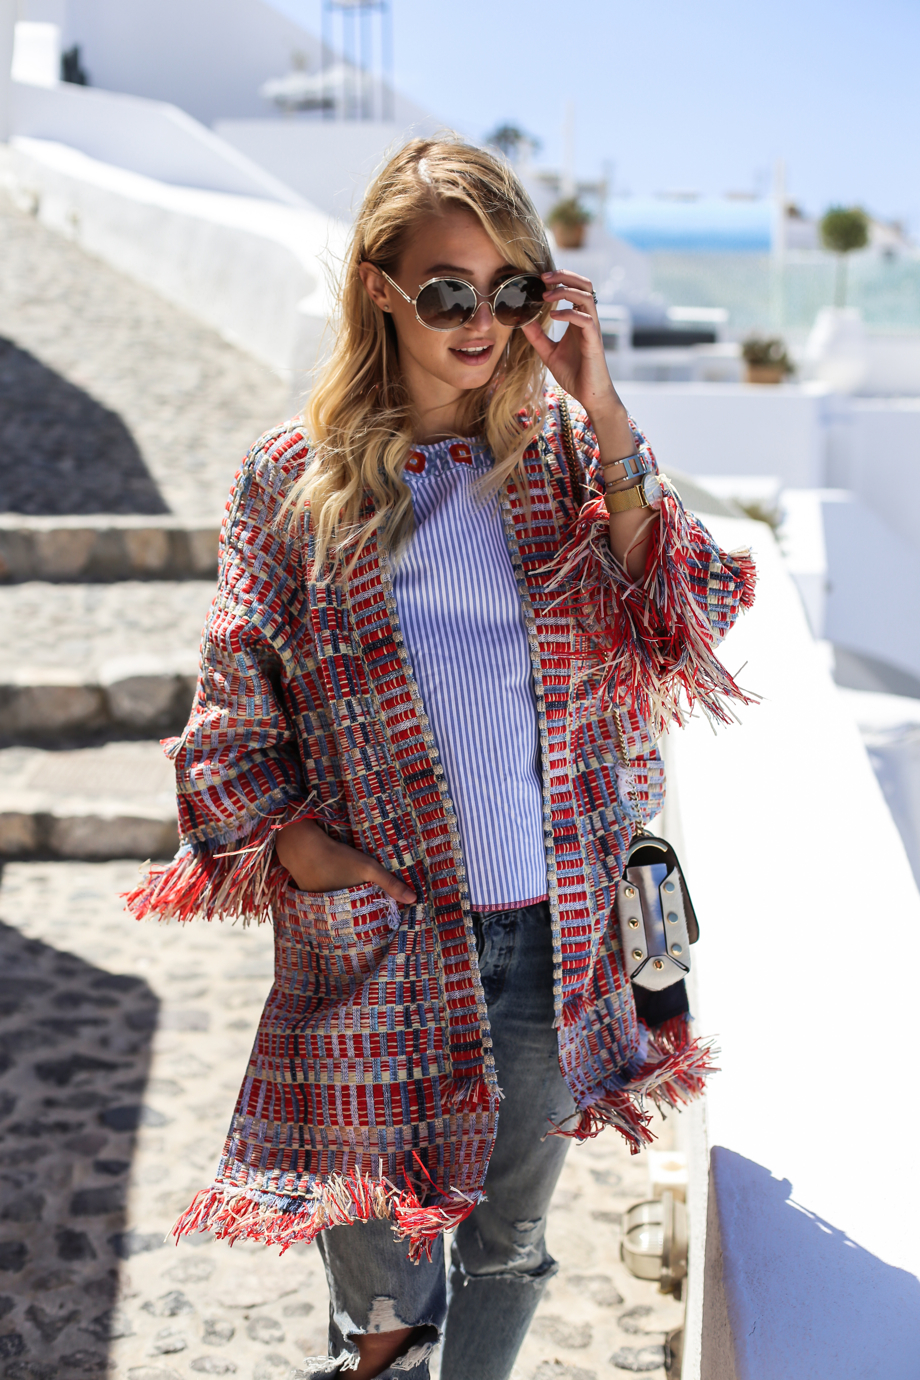 Stripes_Fringes_Levis_ToryBurch_ohhcouture_Santorini14